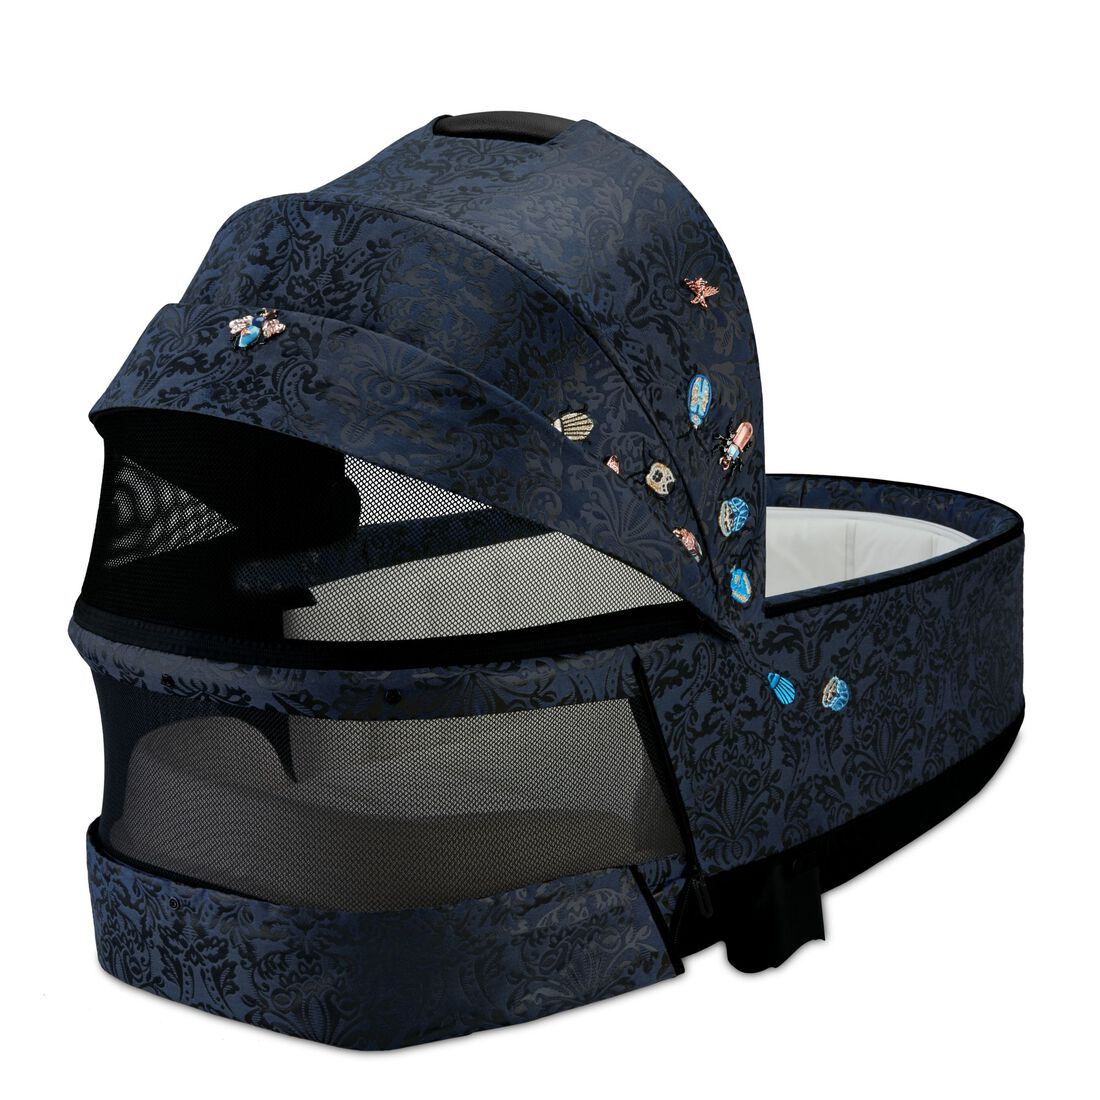 CYBEX Priam Lux Carry Cot - Jewels of Nature in Jewels of Nature large Bild 3